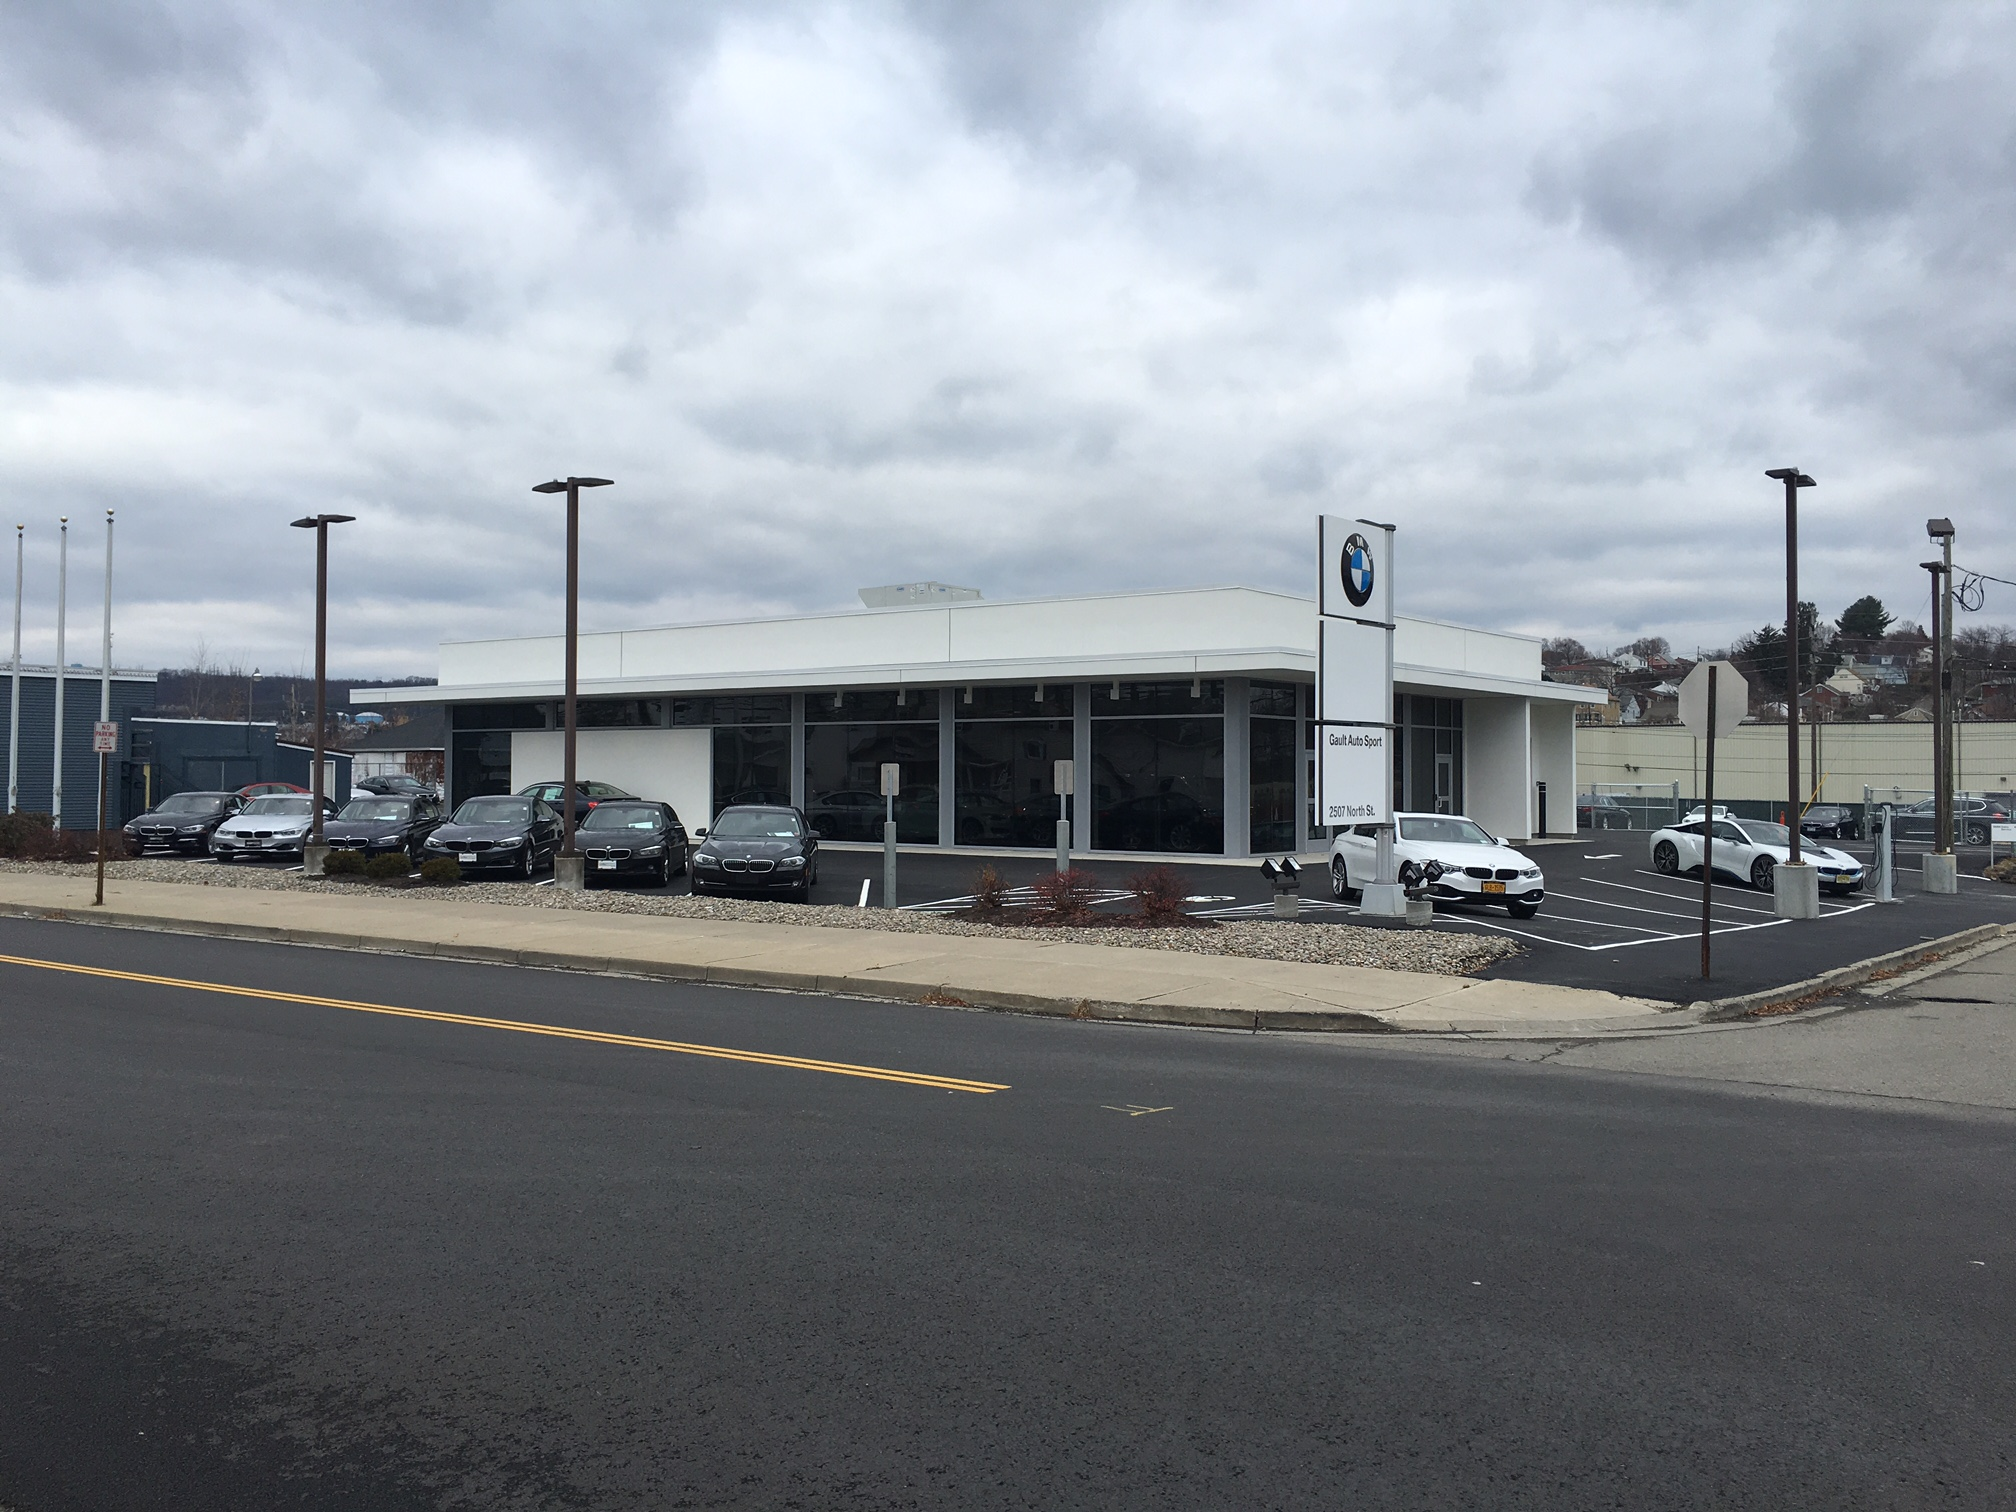 View of Dealership from the road.